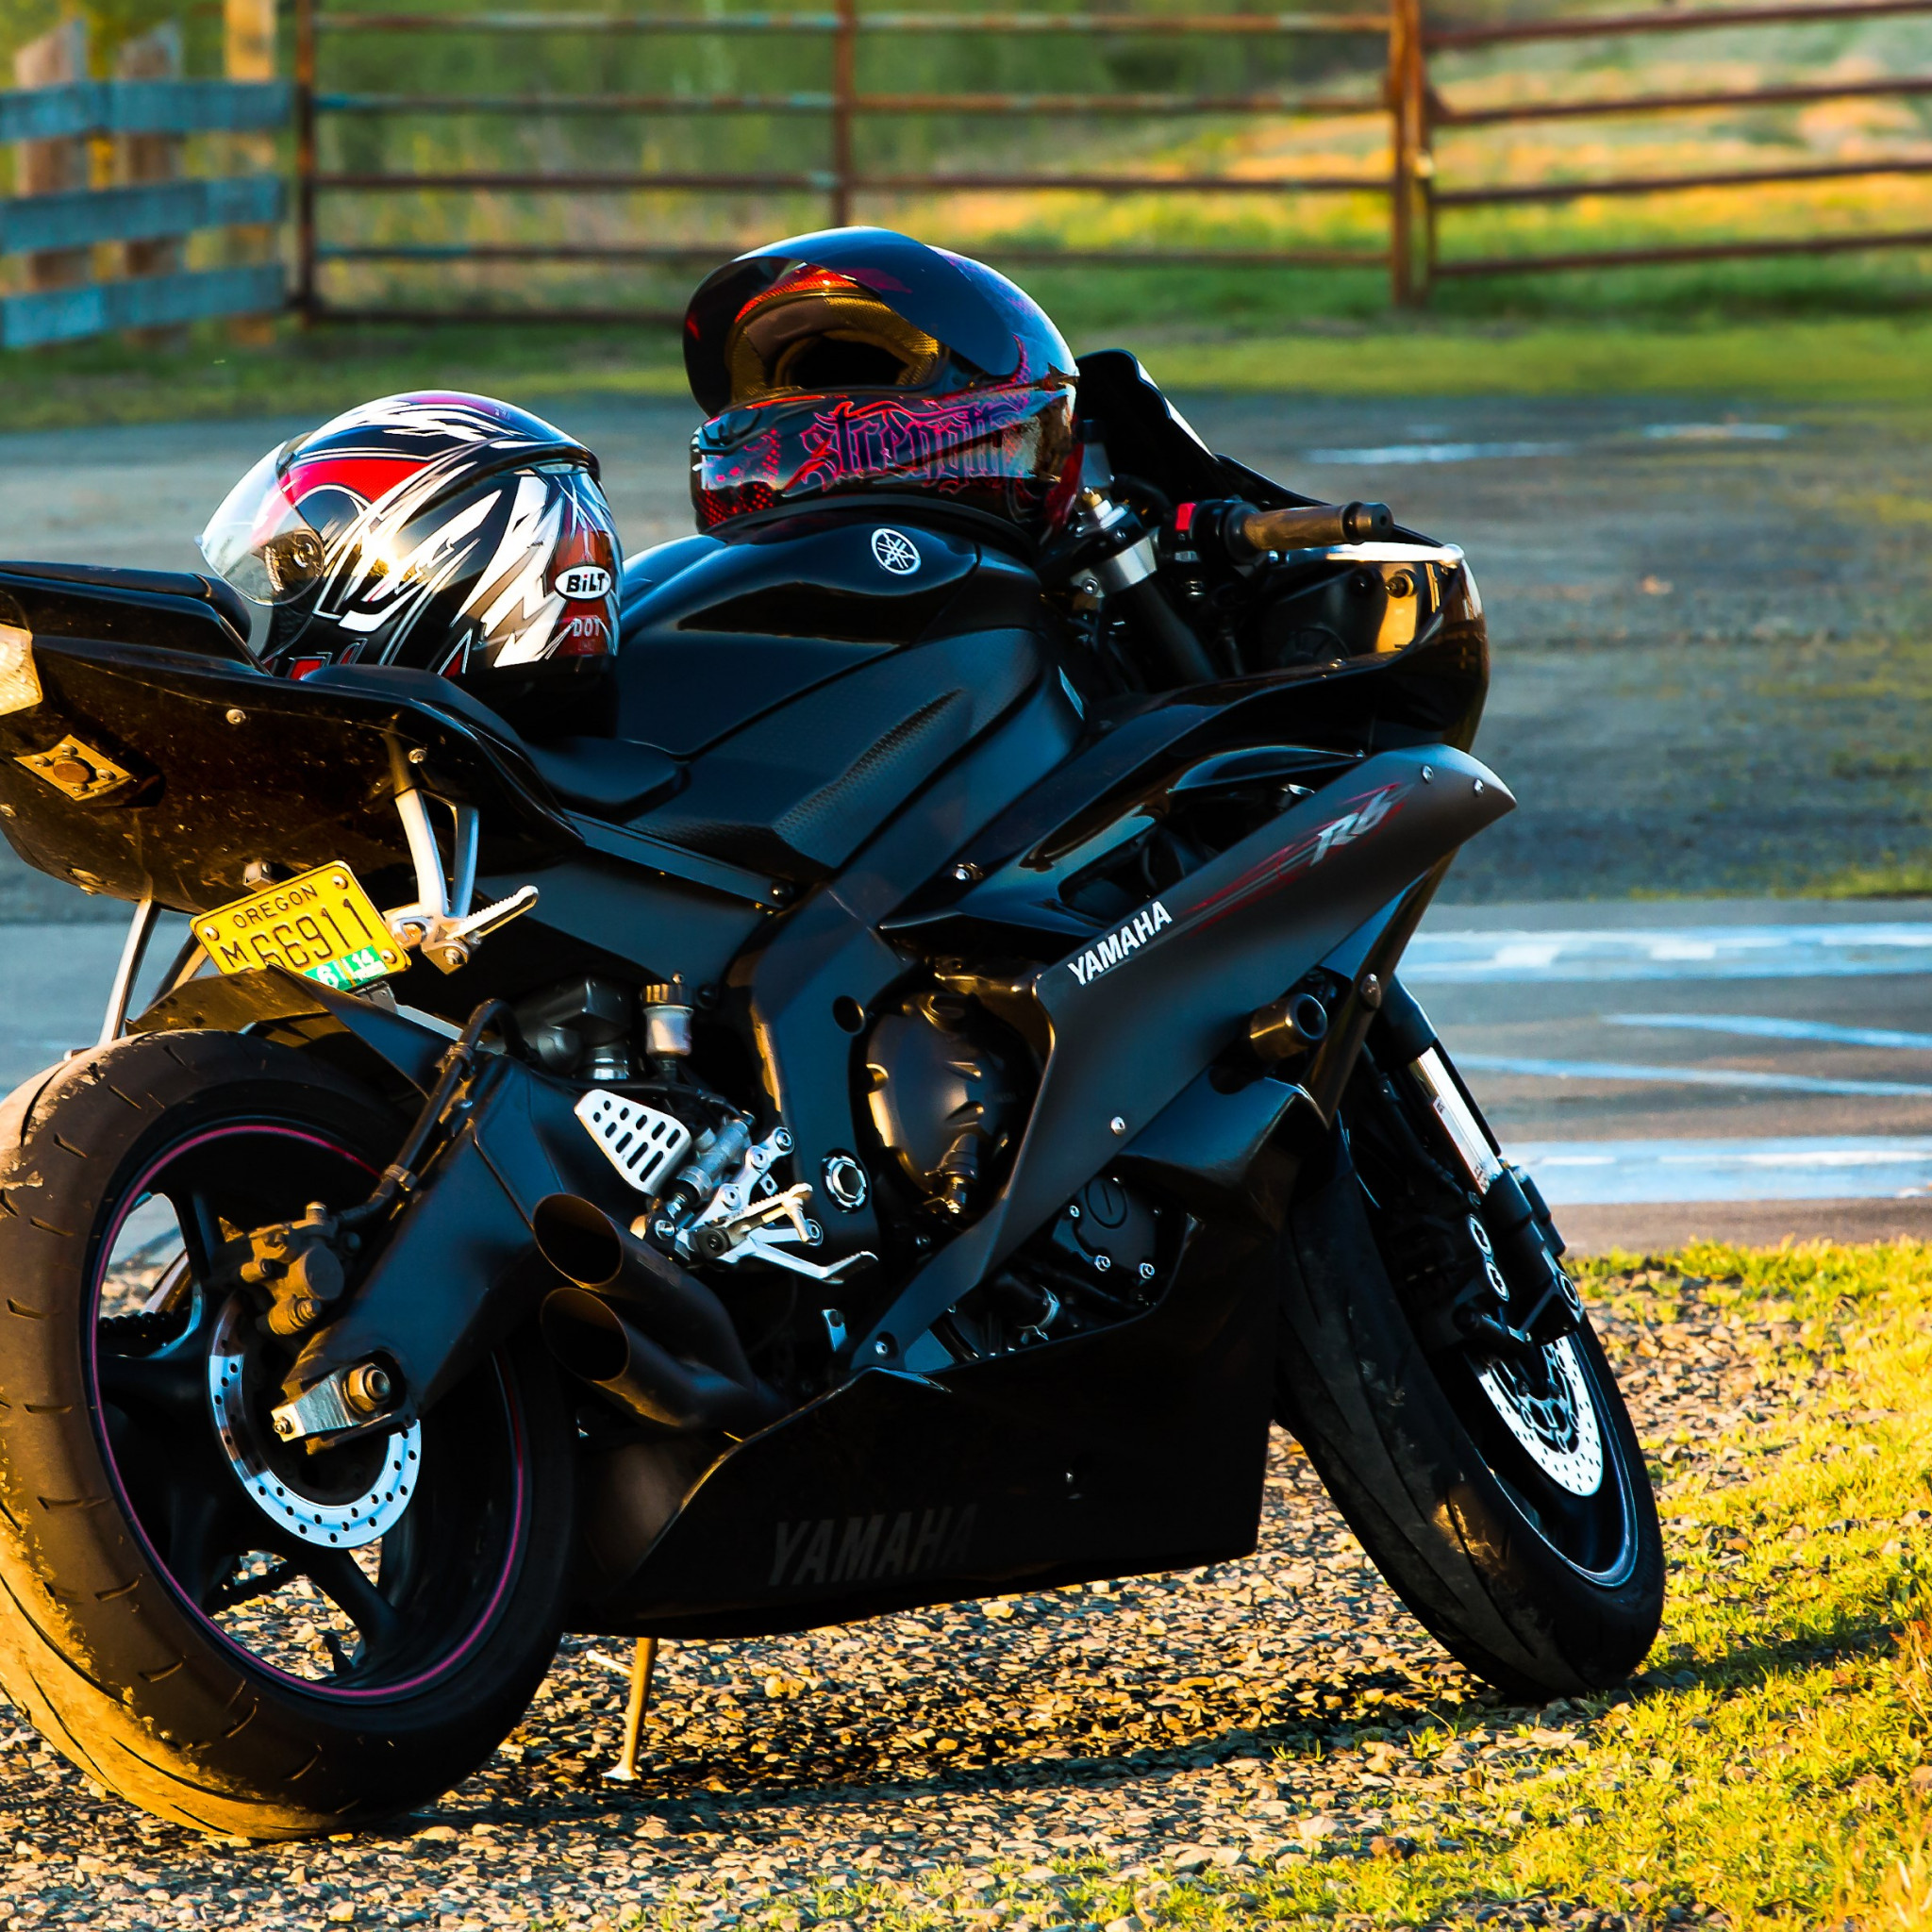 Yamaha R6 | 2048x2048 wallpaper